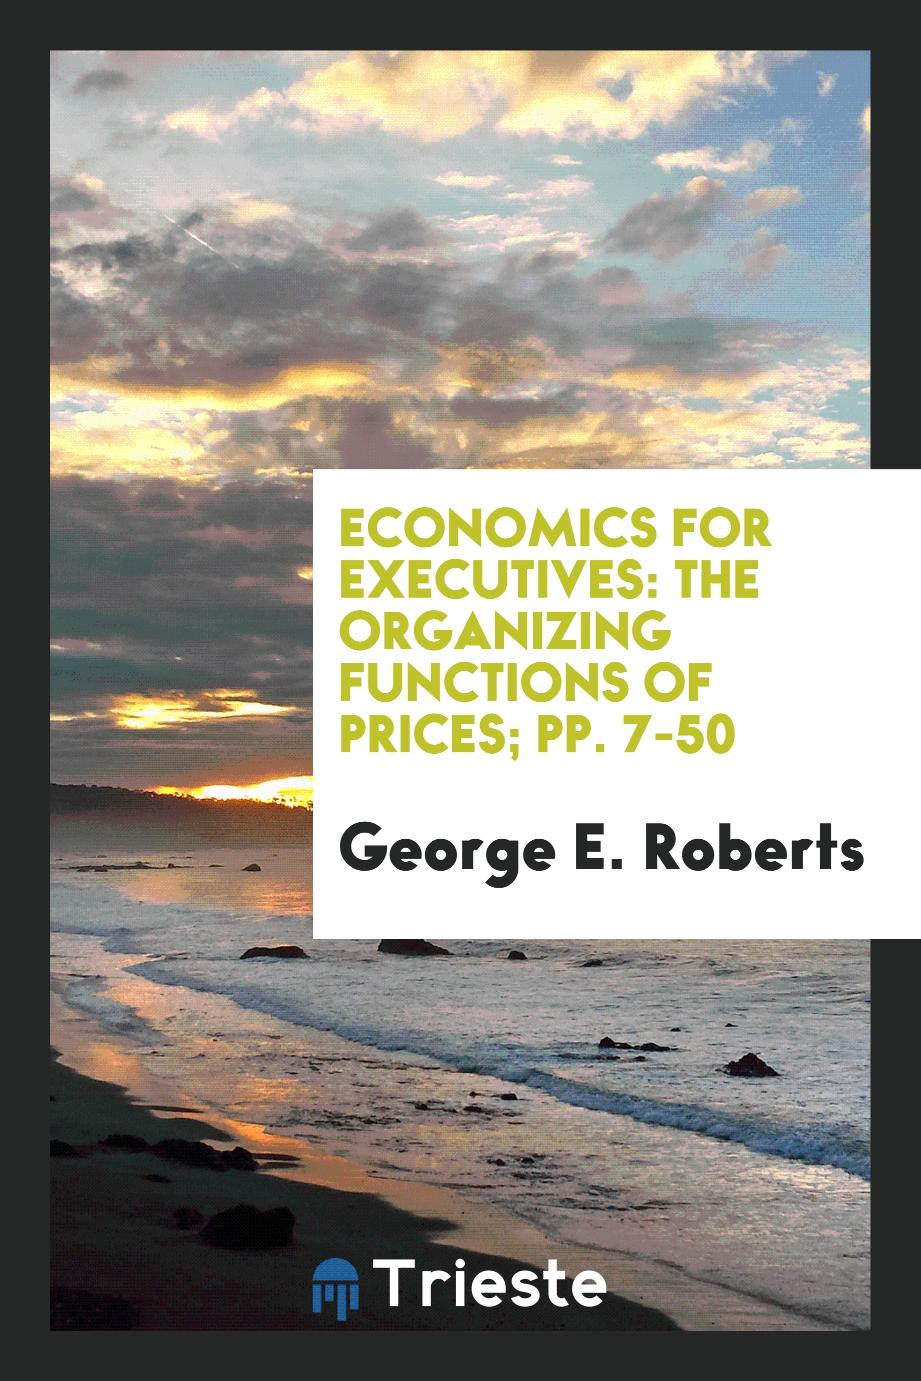 Economics for Executives: The organizing functions of prices; pp. 7-50